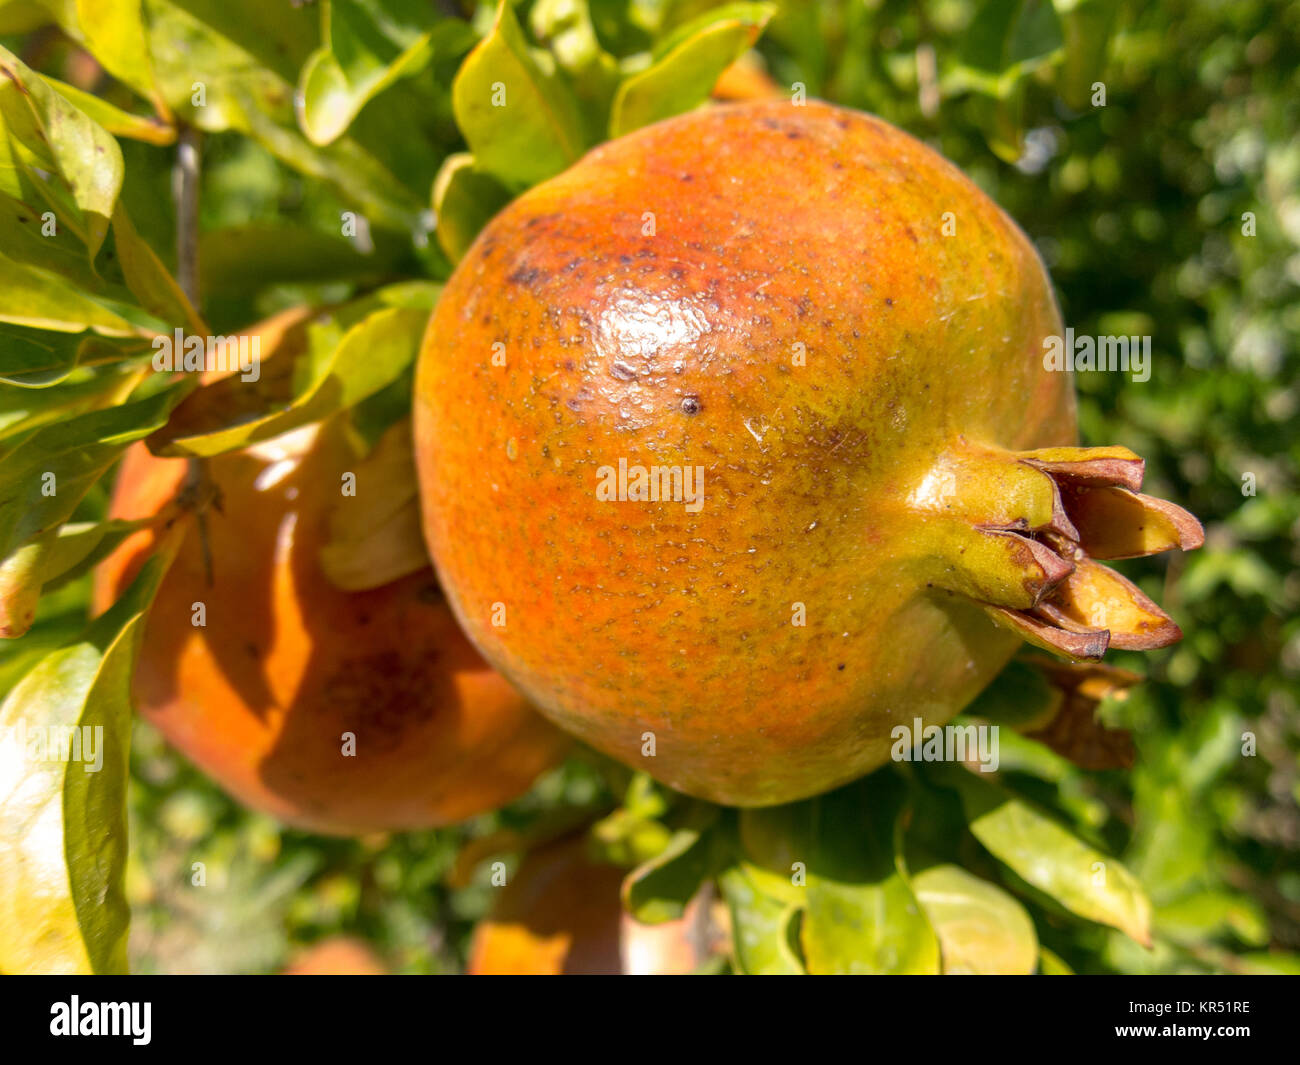 Pomegrante growing on a tree Punica granatum - Stock Image